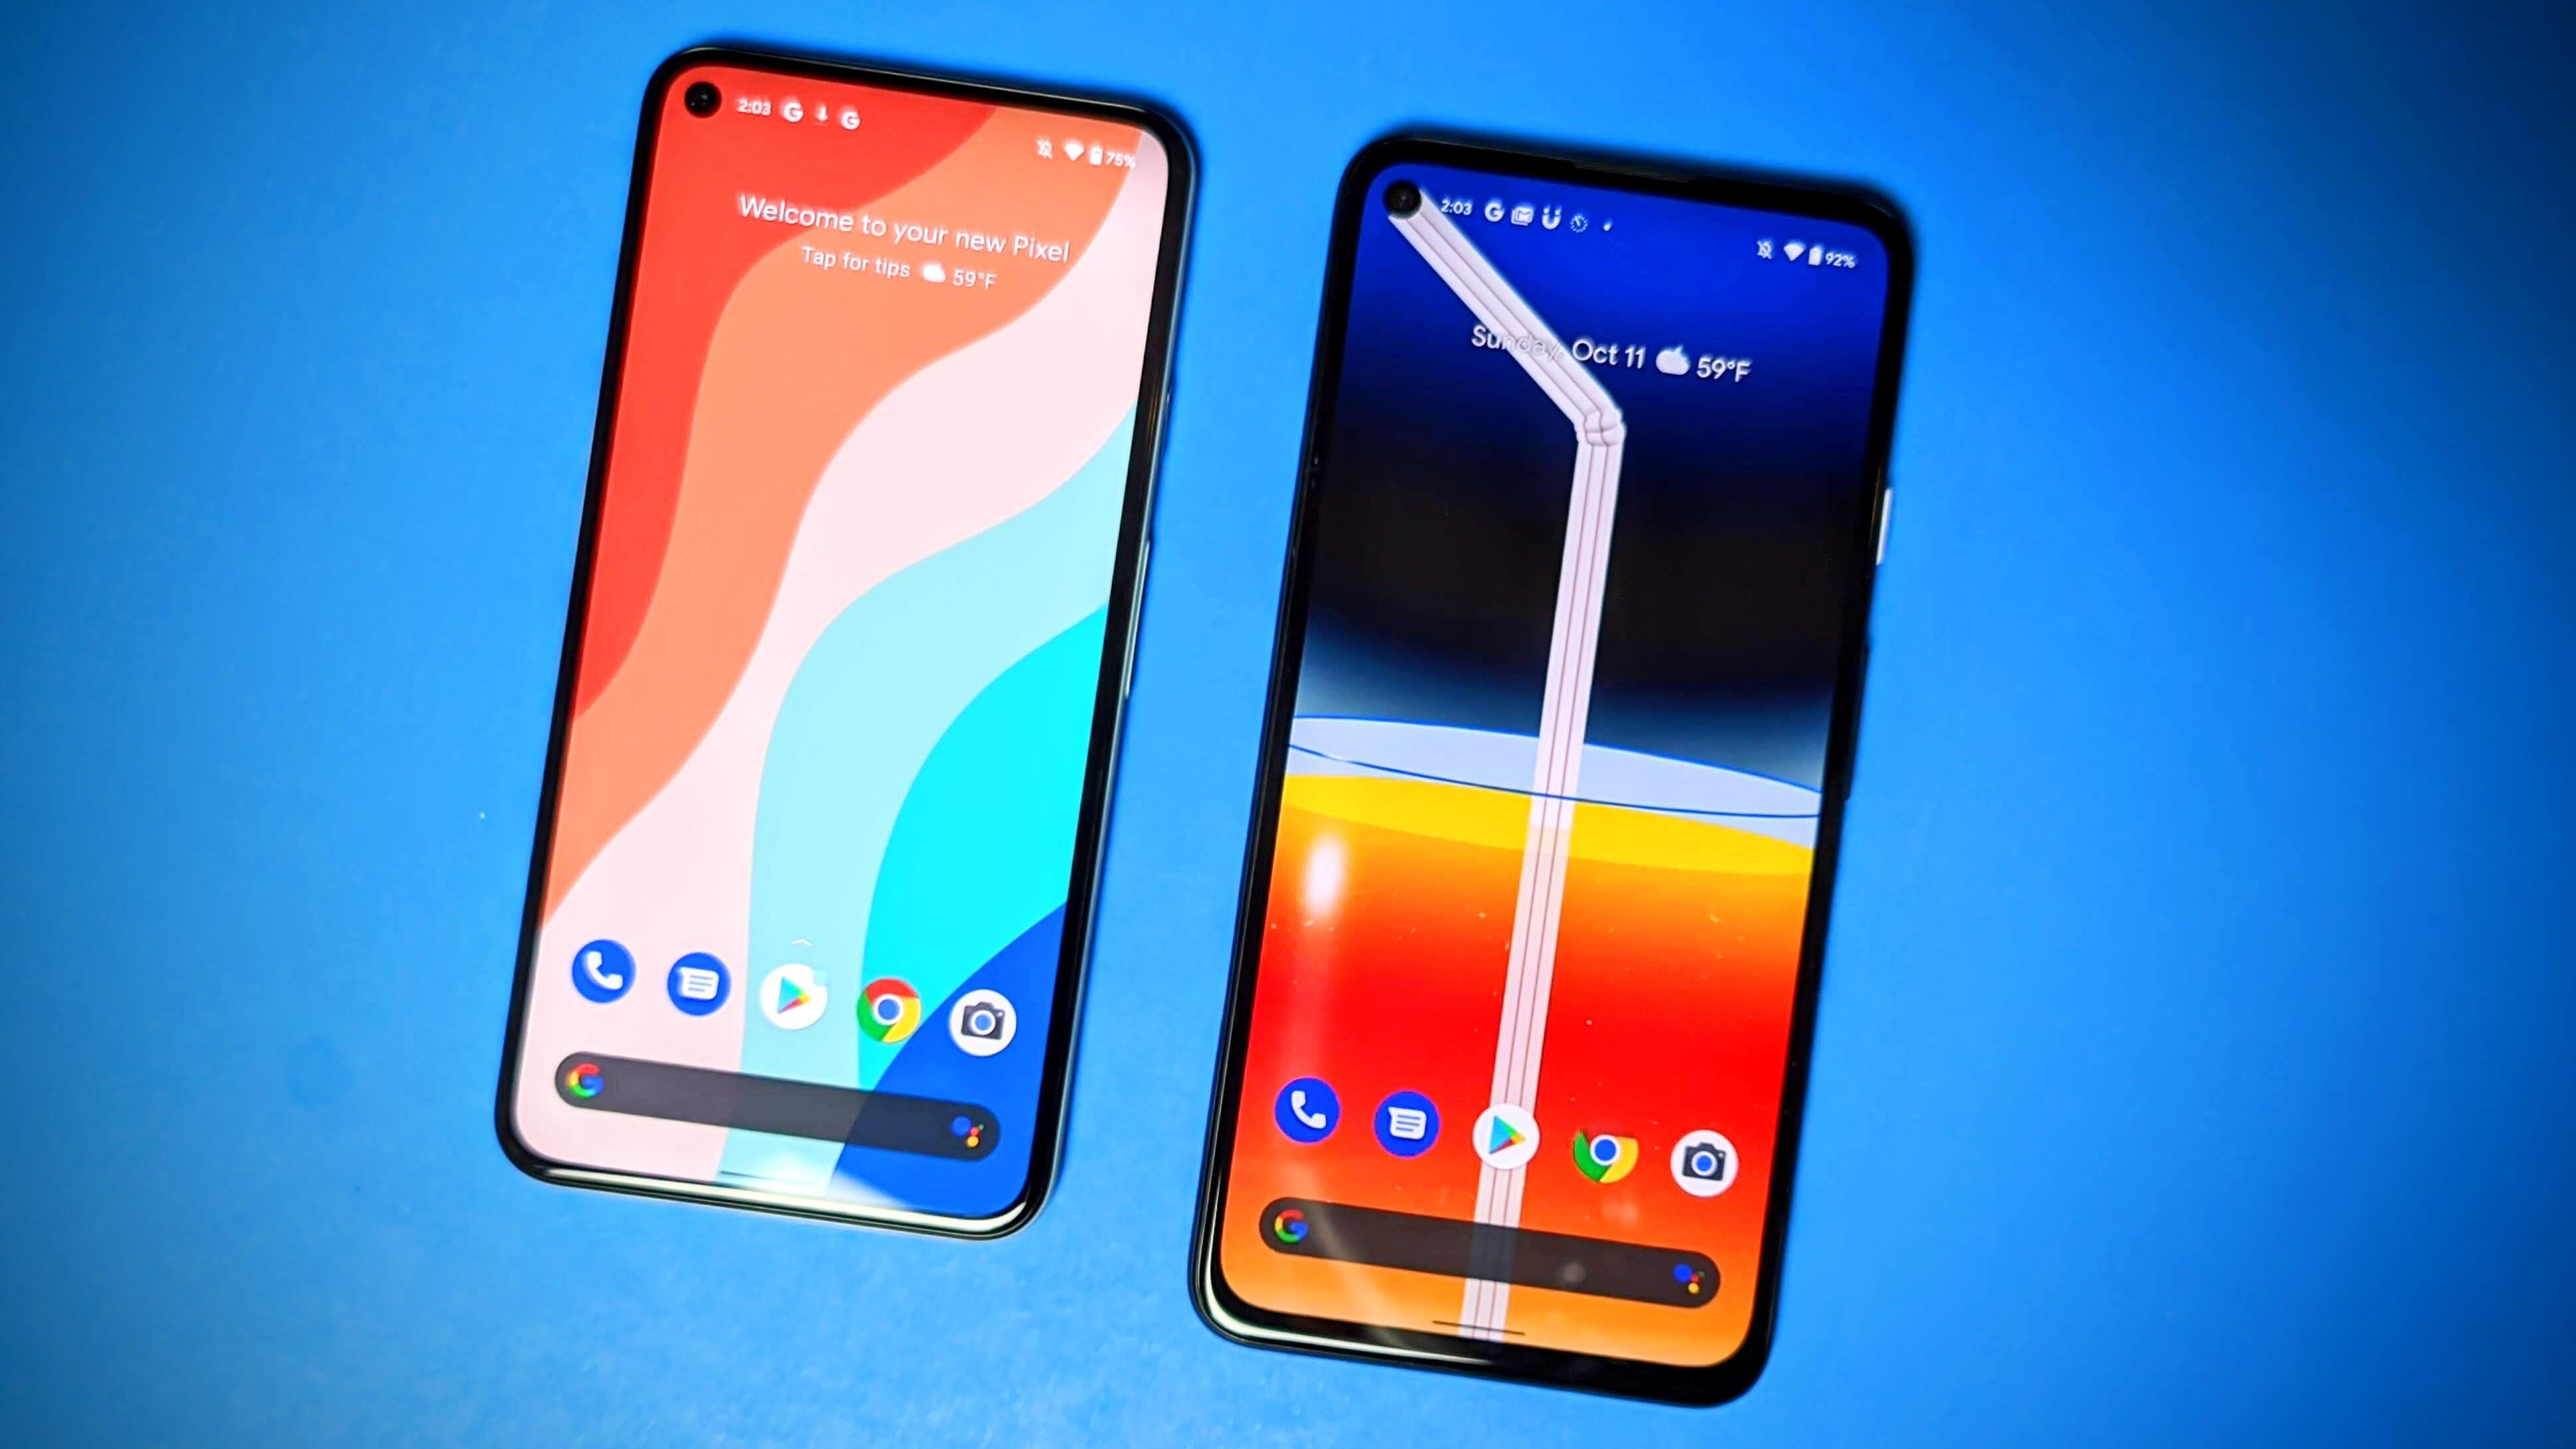 Pixel 6 will be released soon, and we think you should give Google's phones another shot